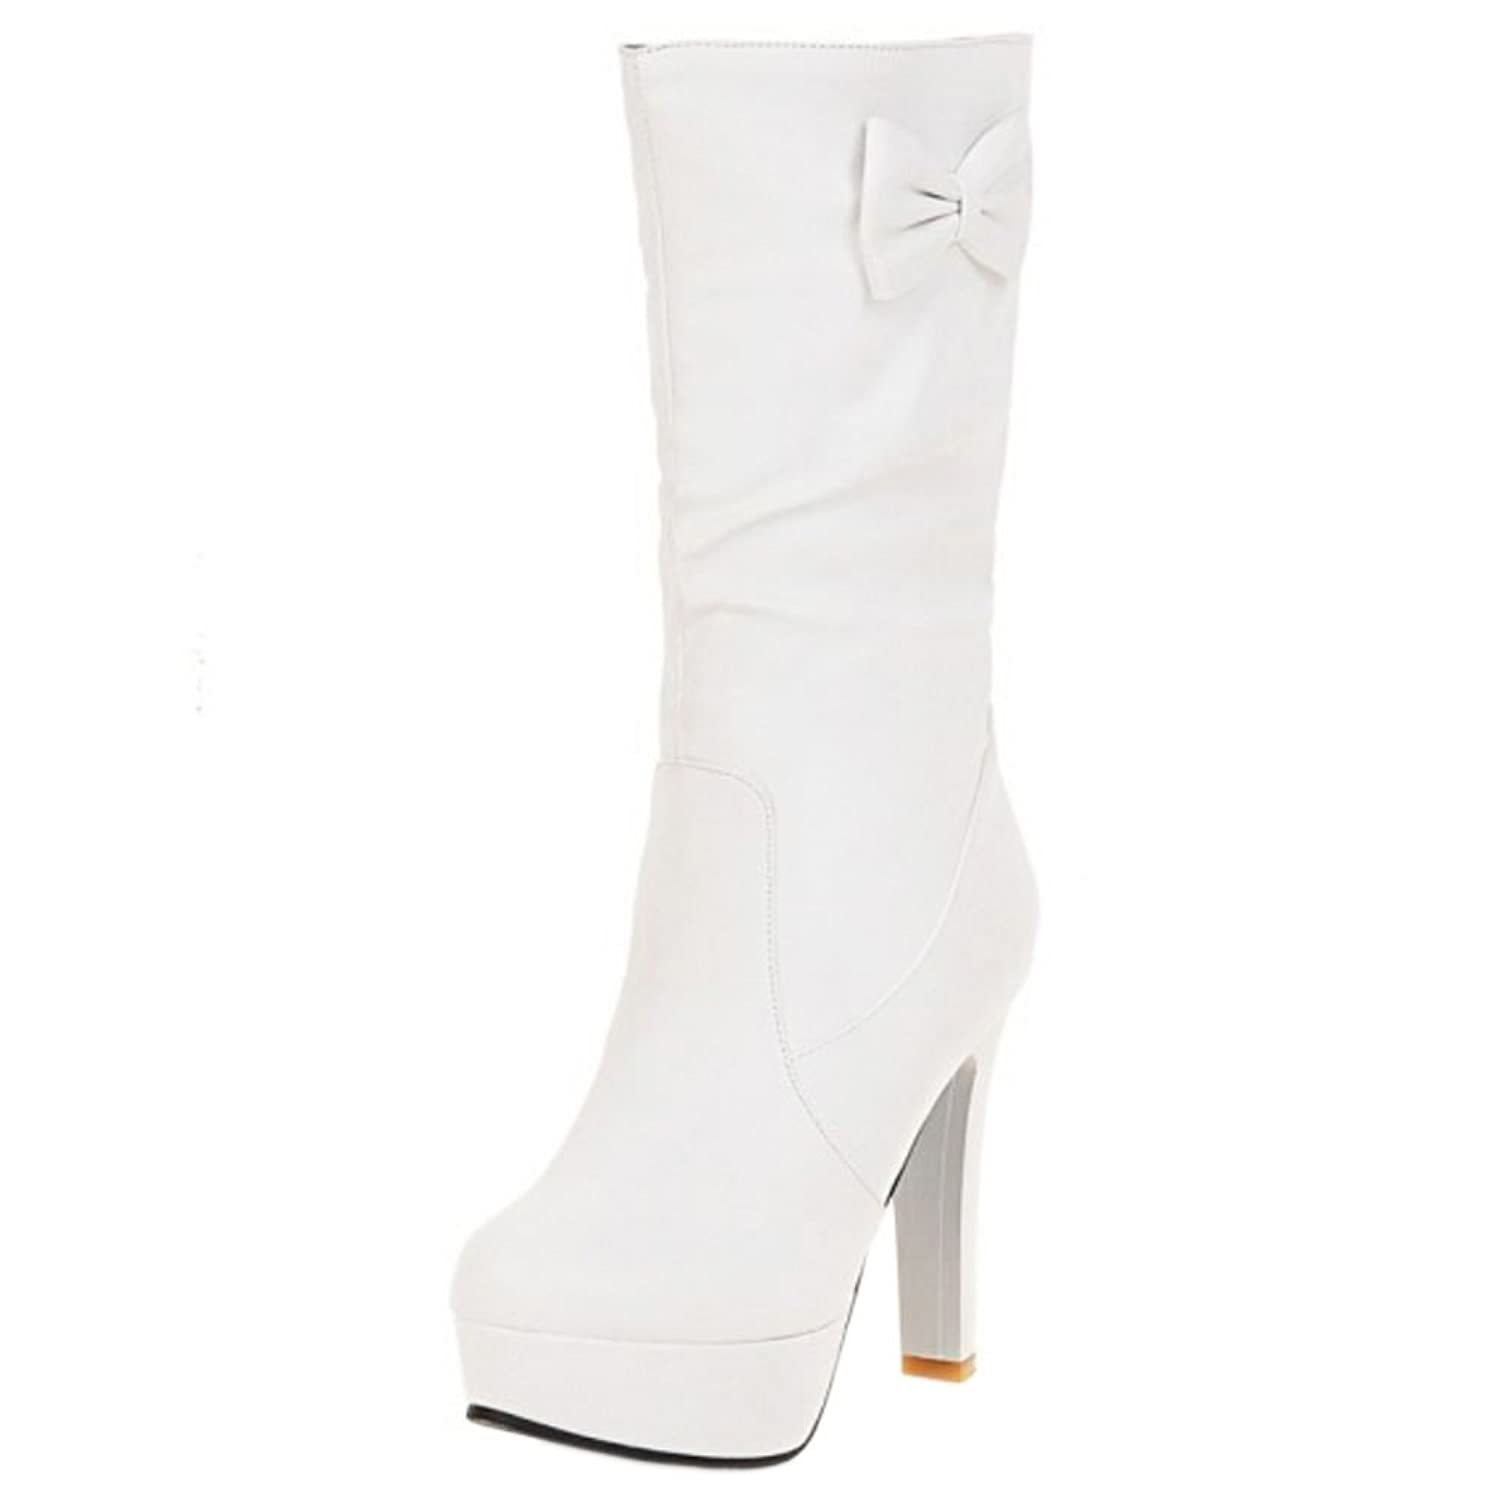 COOLCEPT Damen Mode Mid Calf Slouch Stiefel Hohe Ferse With Bogen White